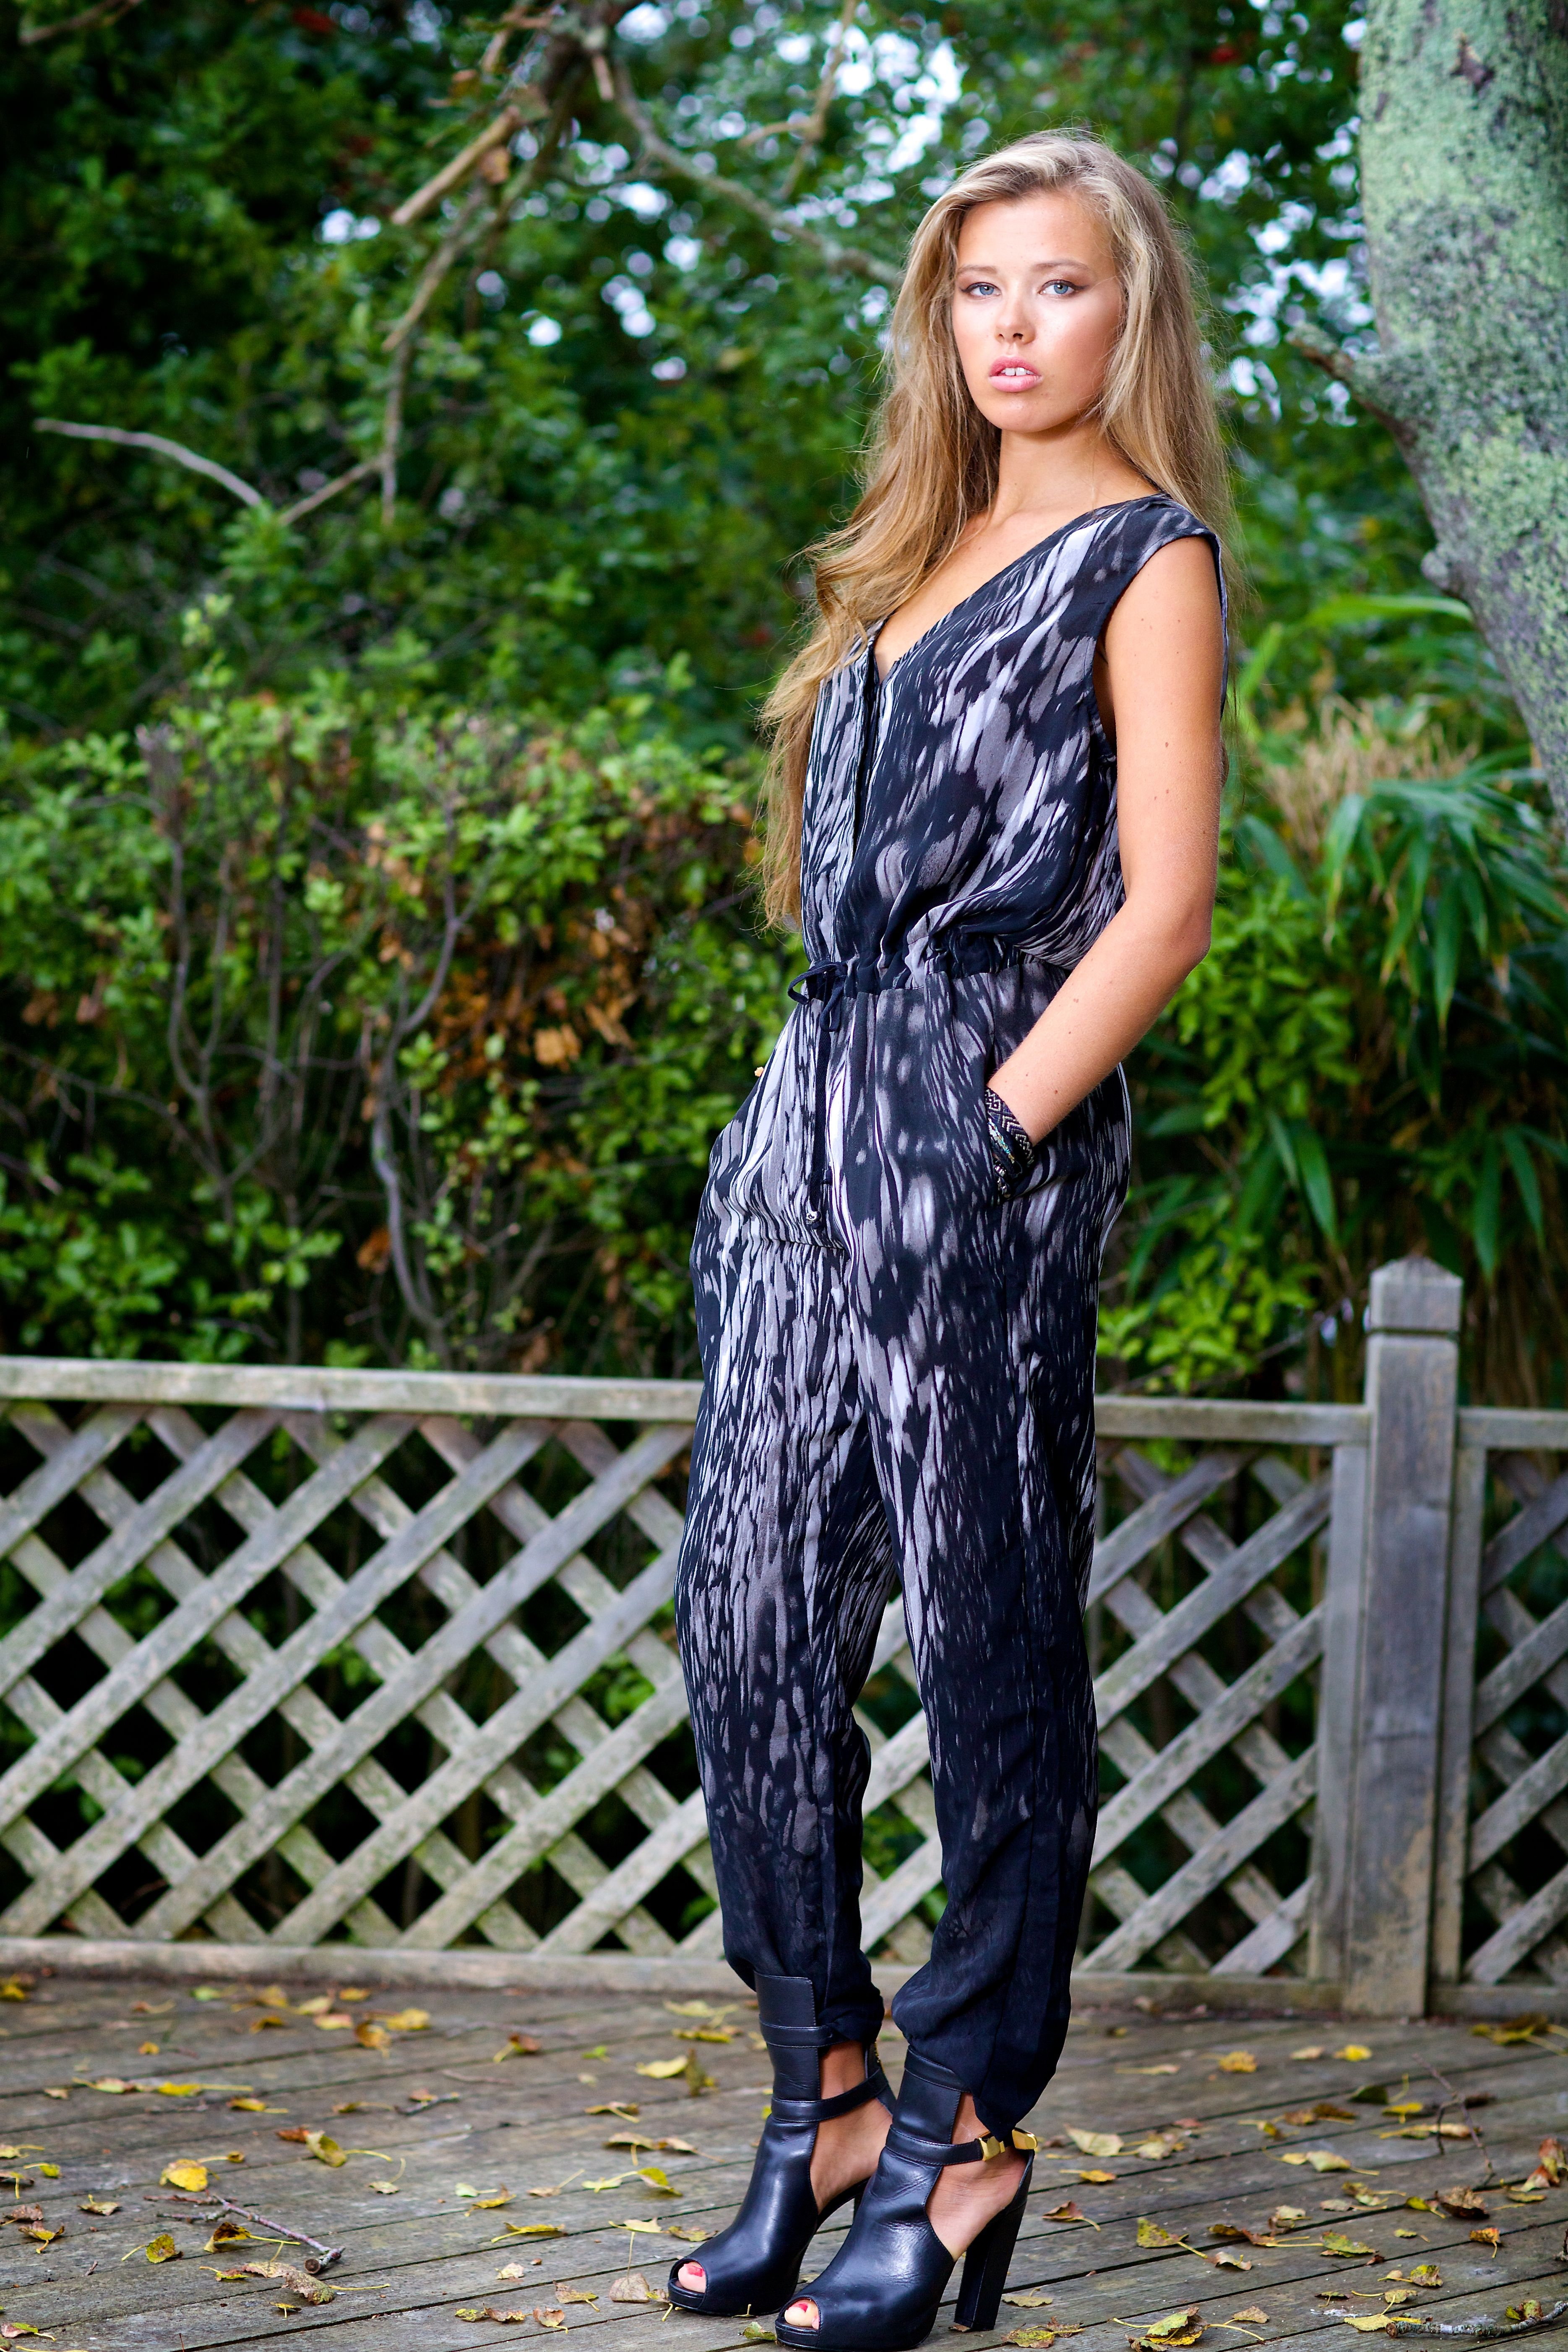 http://www.eclecticladiesboutique.com/gb/ #aw14 #religion #trending #jumpsuit  #christmasparty #newyearseve